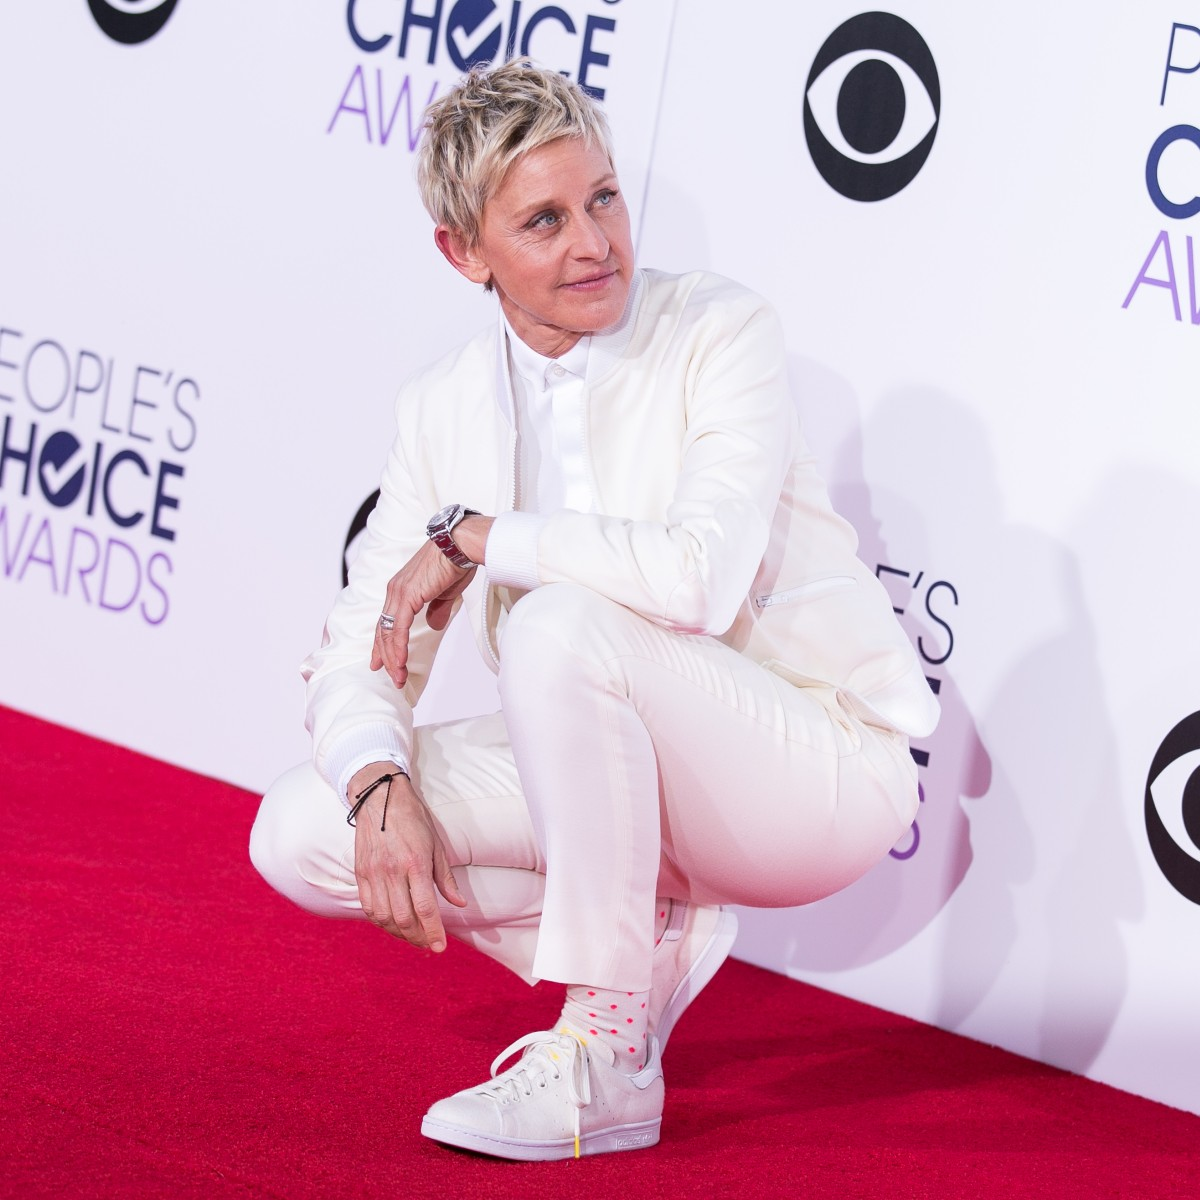 PEOPLE'S CHOICE AWARDS 2015 – ARRIVALS